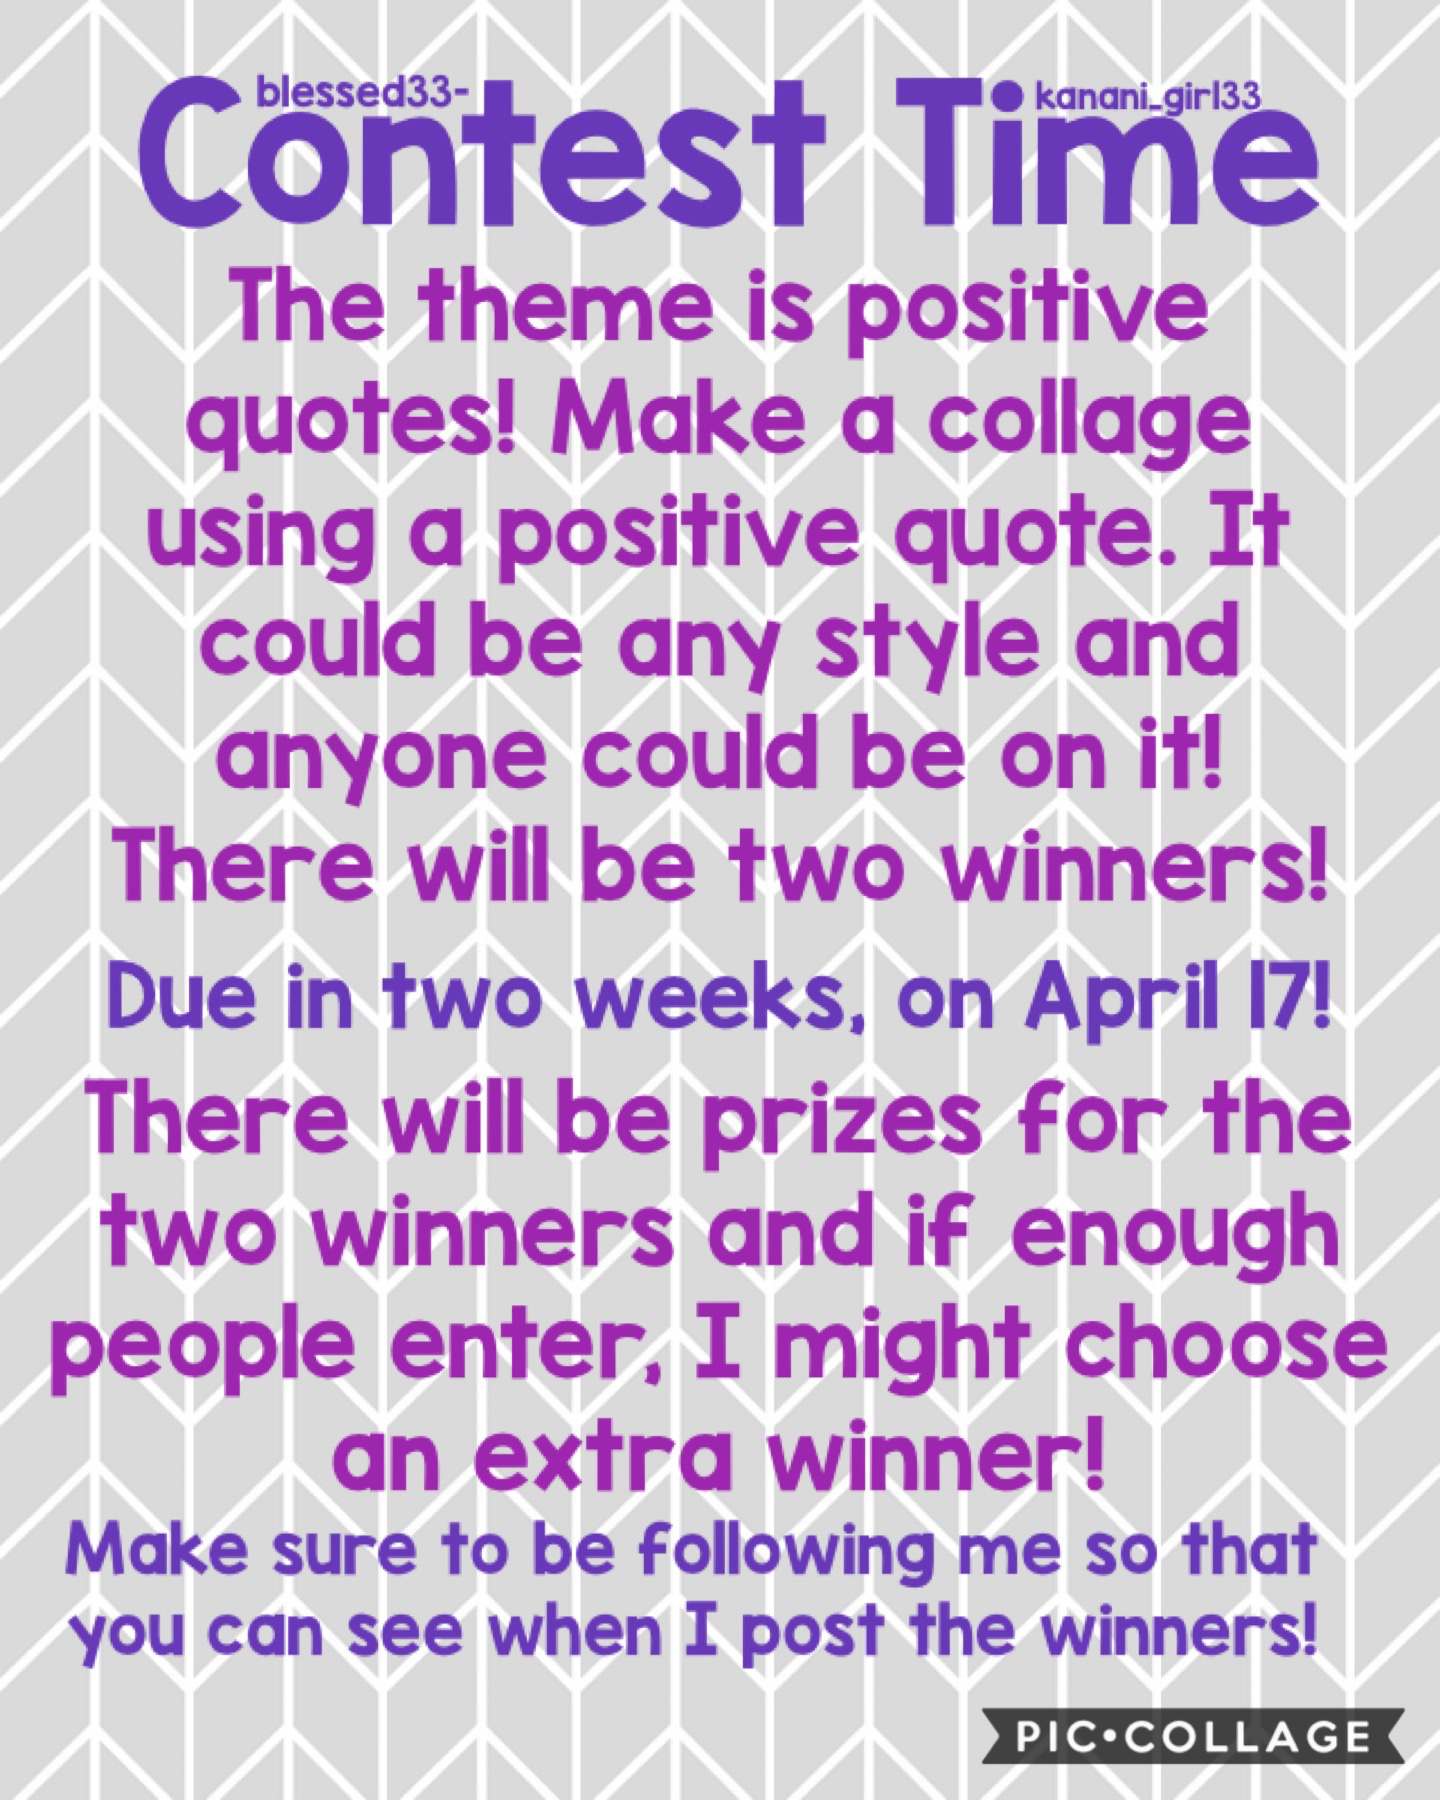 There will be amazing prizes for 2-3 winners!!! Let's spread some more positivity in the world! 💕♥️🔥